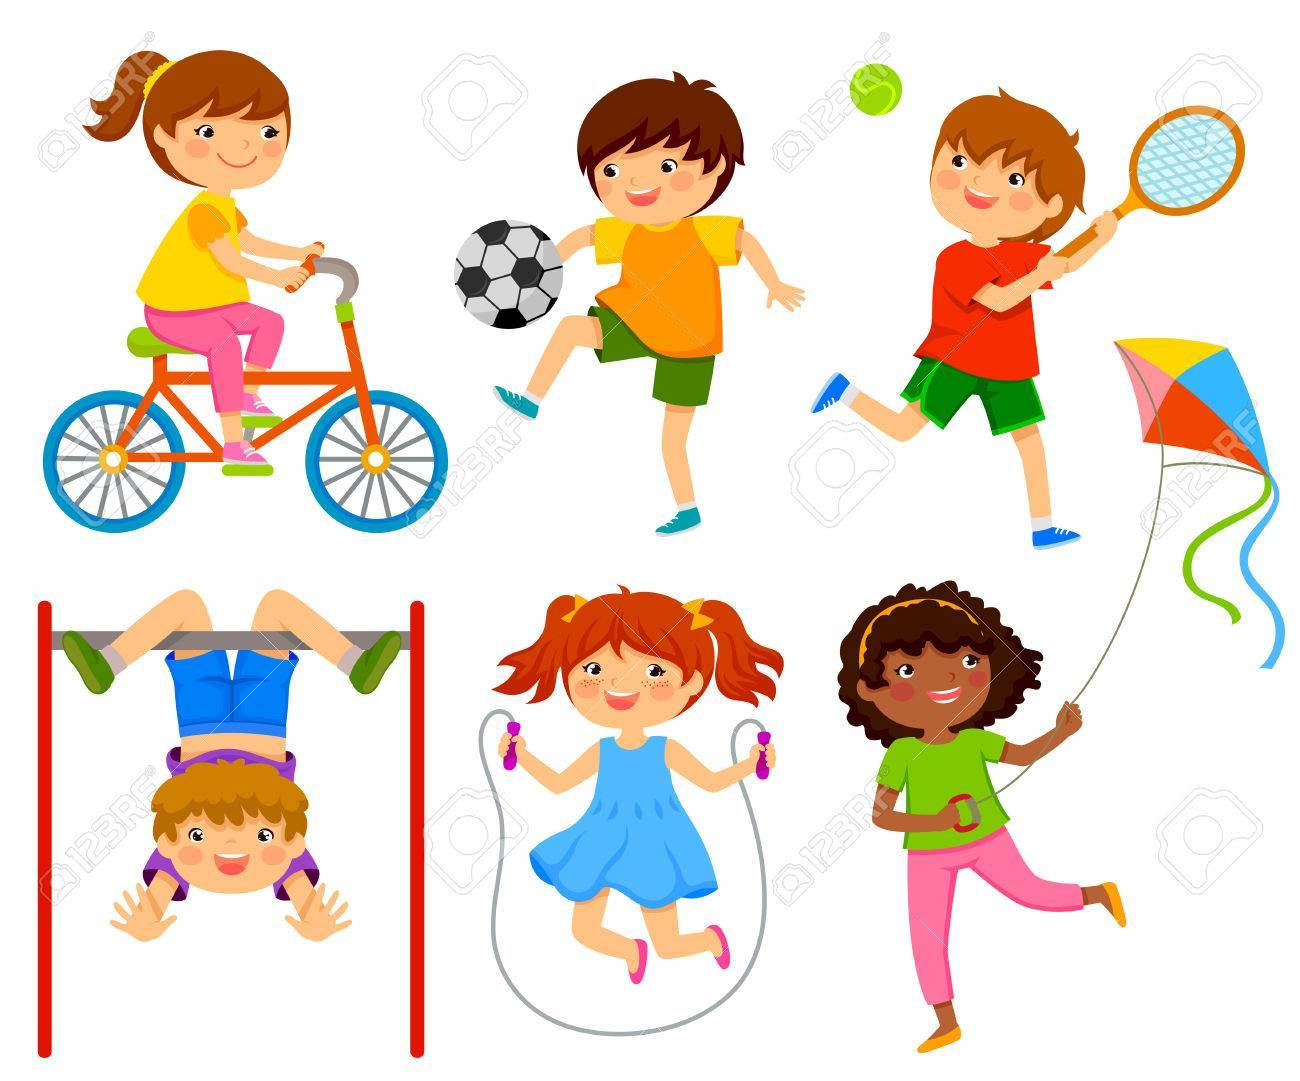 Children playing outside clipart 7 » Clipart Portal.